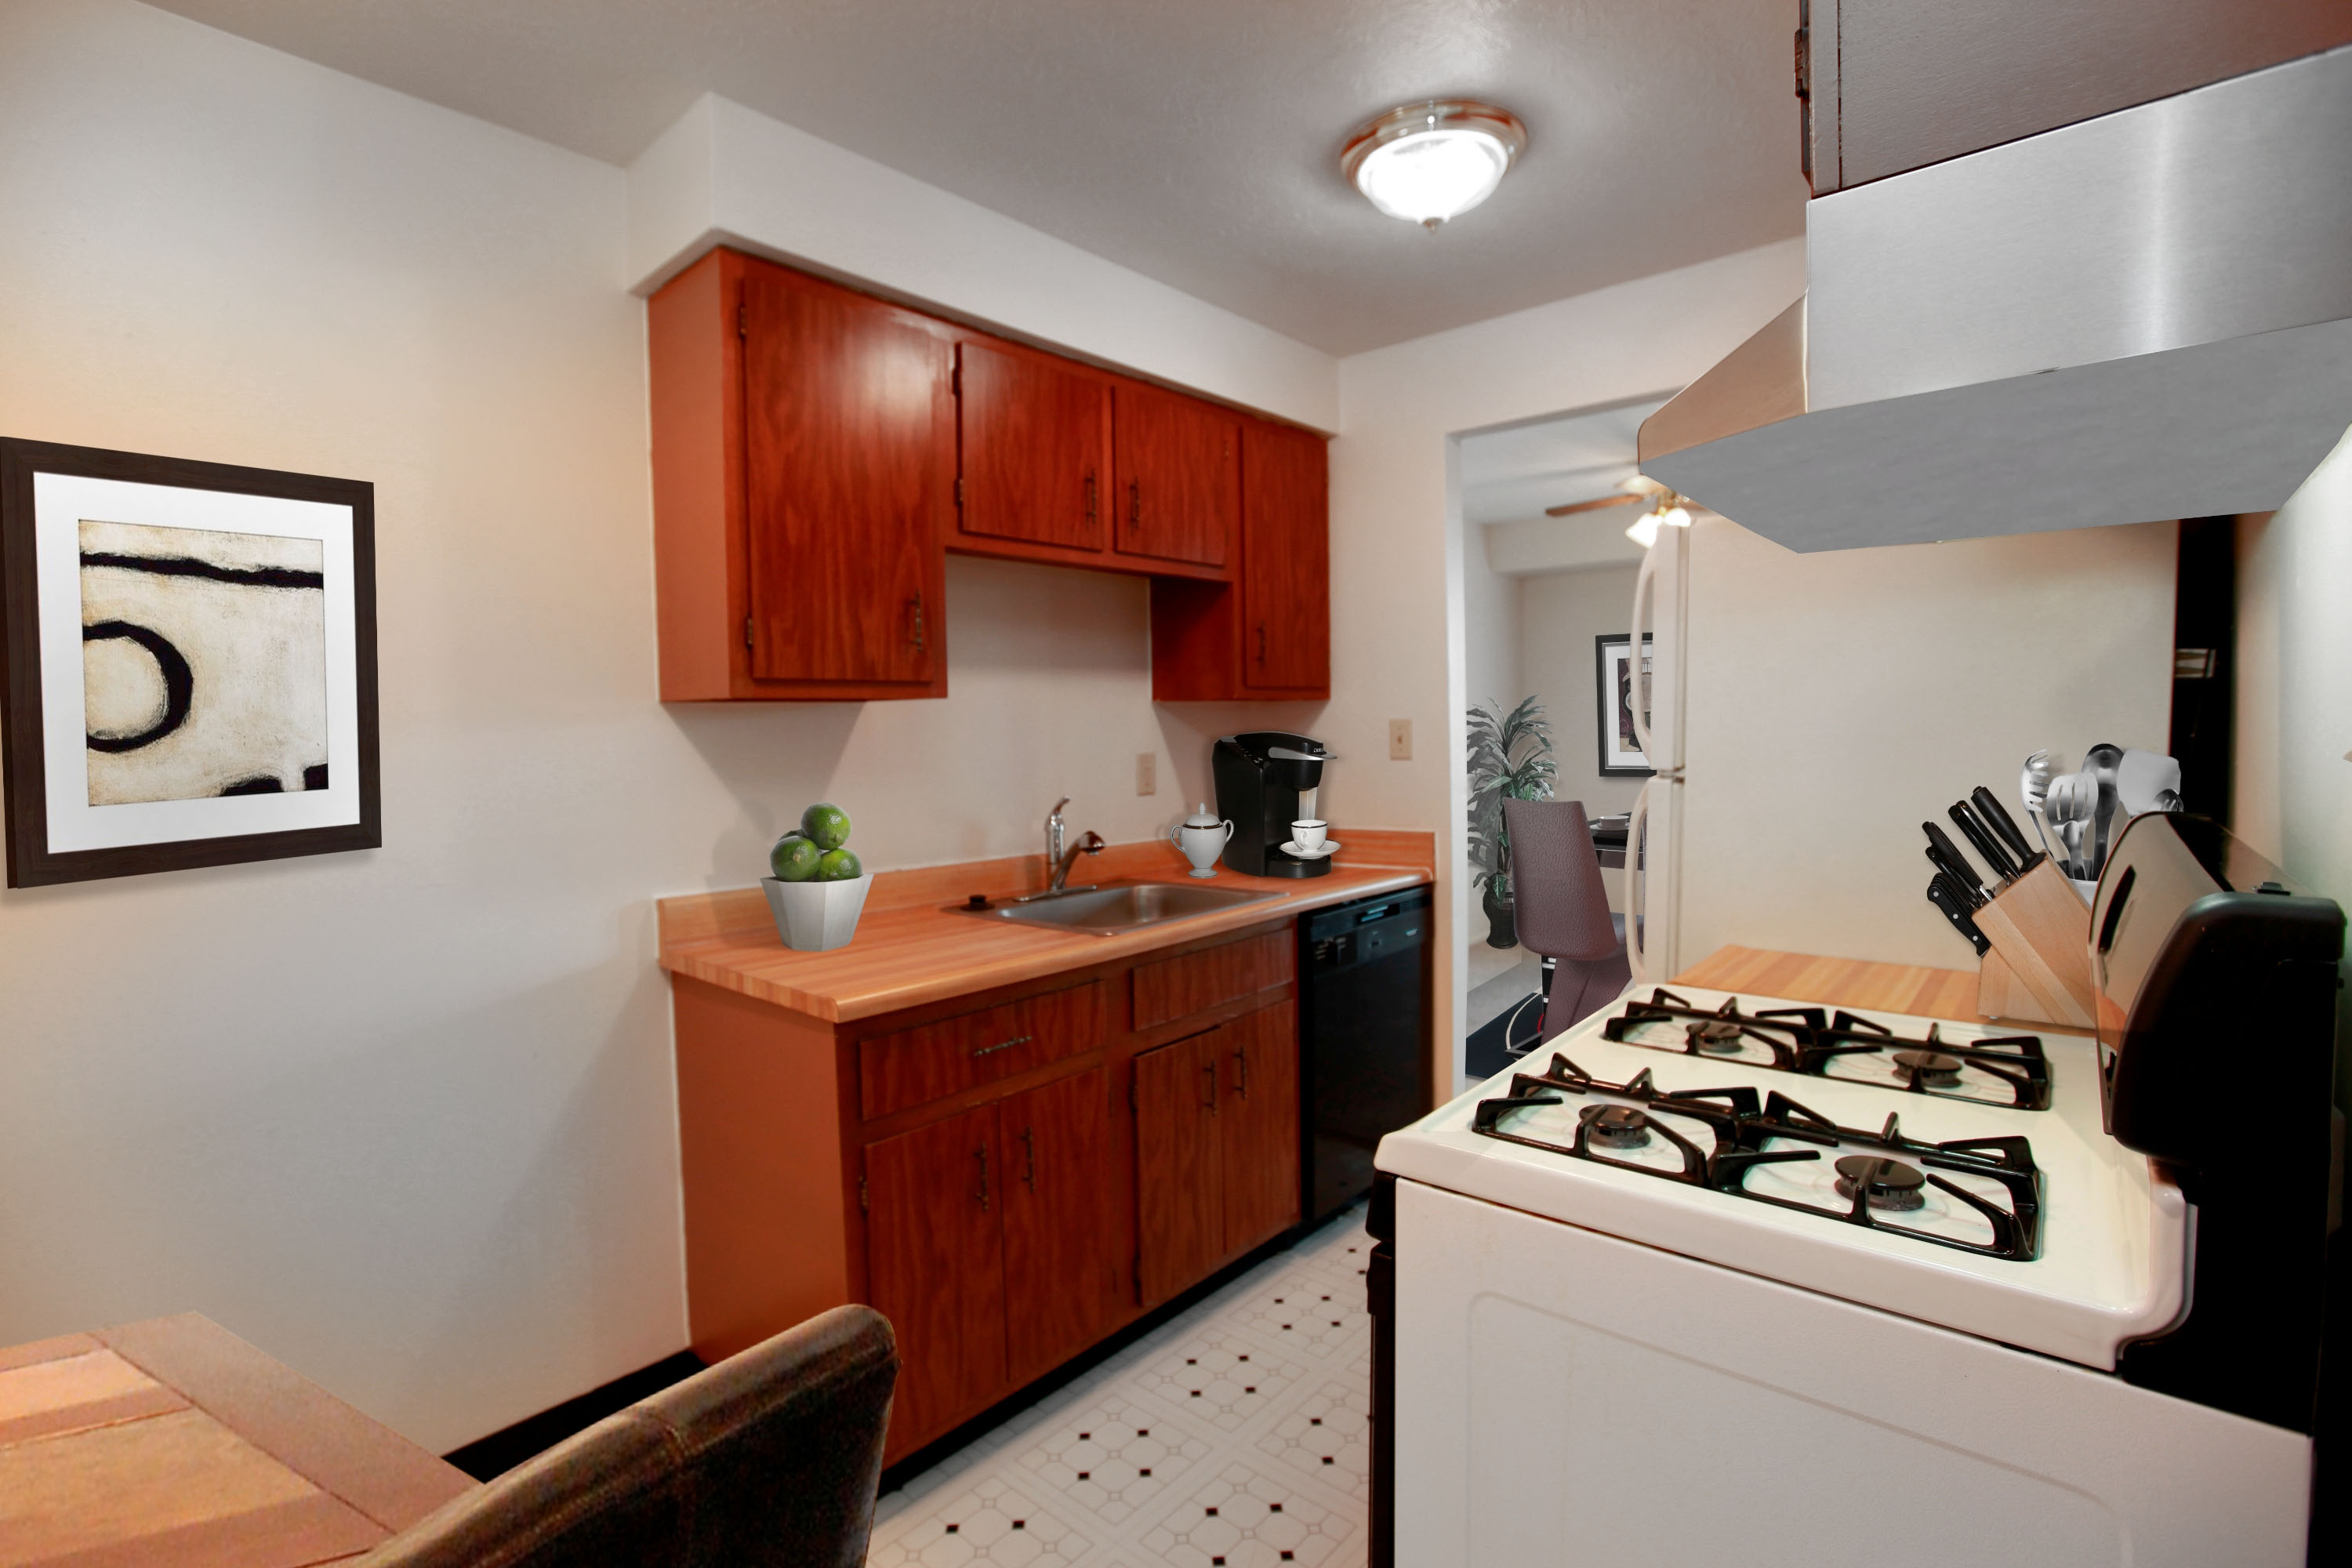 1B Eat-in Kitchen at the Greenridge on Euclid Apartments in Euclid, OH